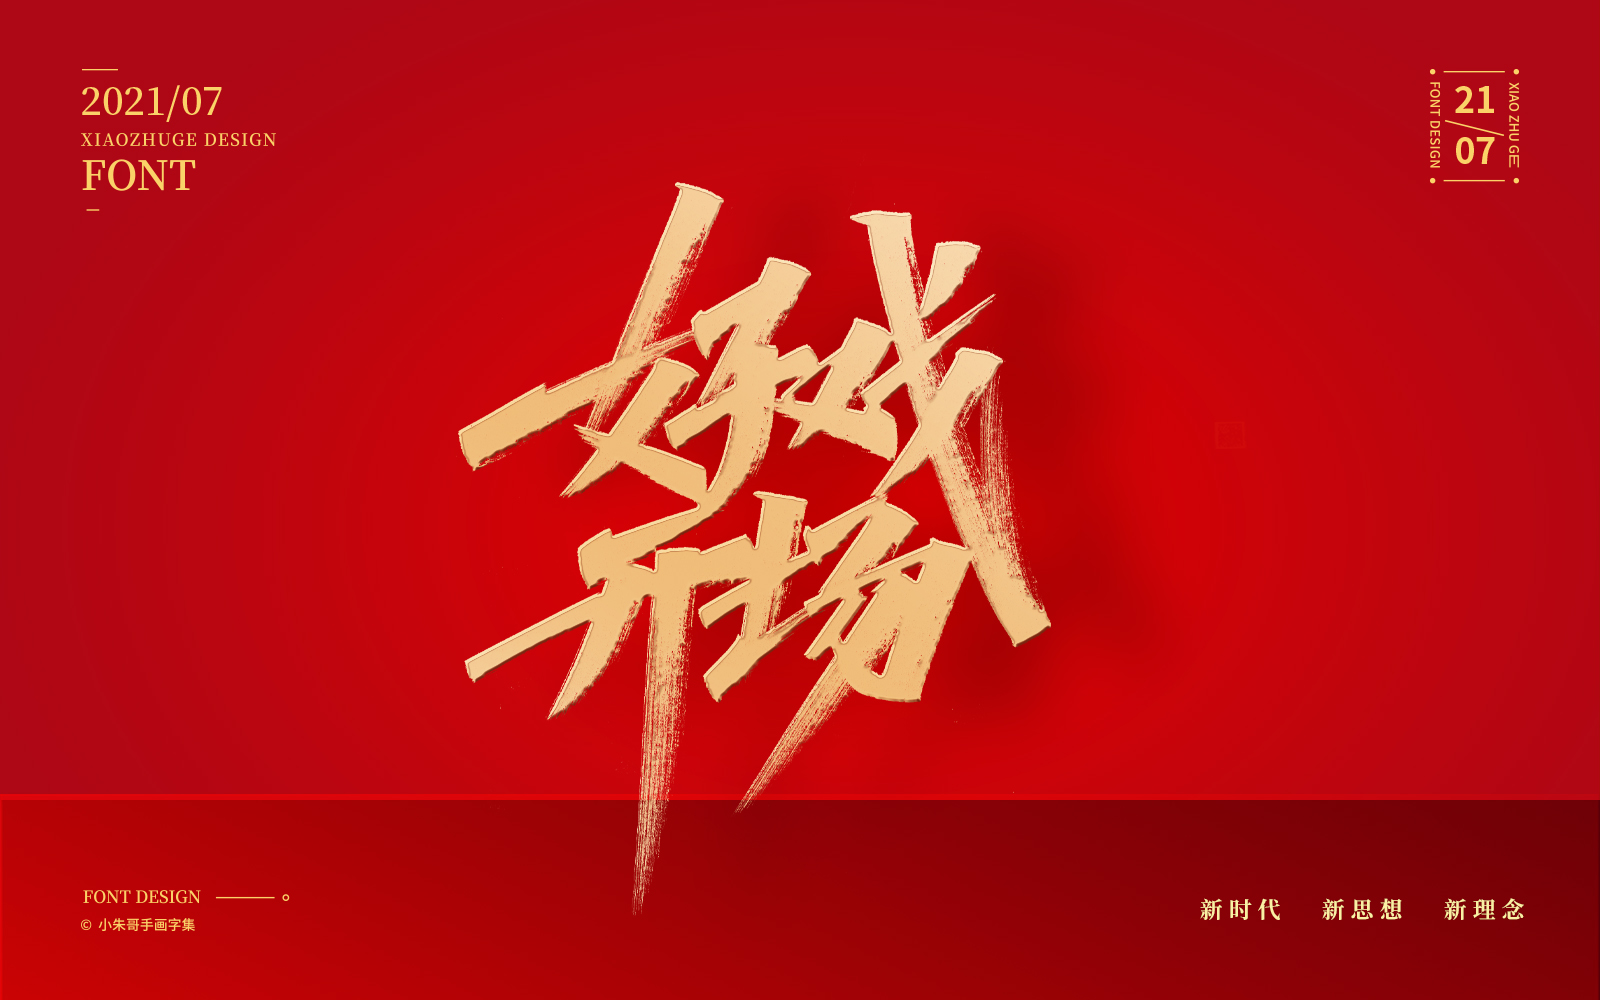 13P Collection of the latest Chinese font design schemes in 2021 #.286